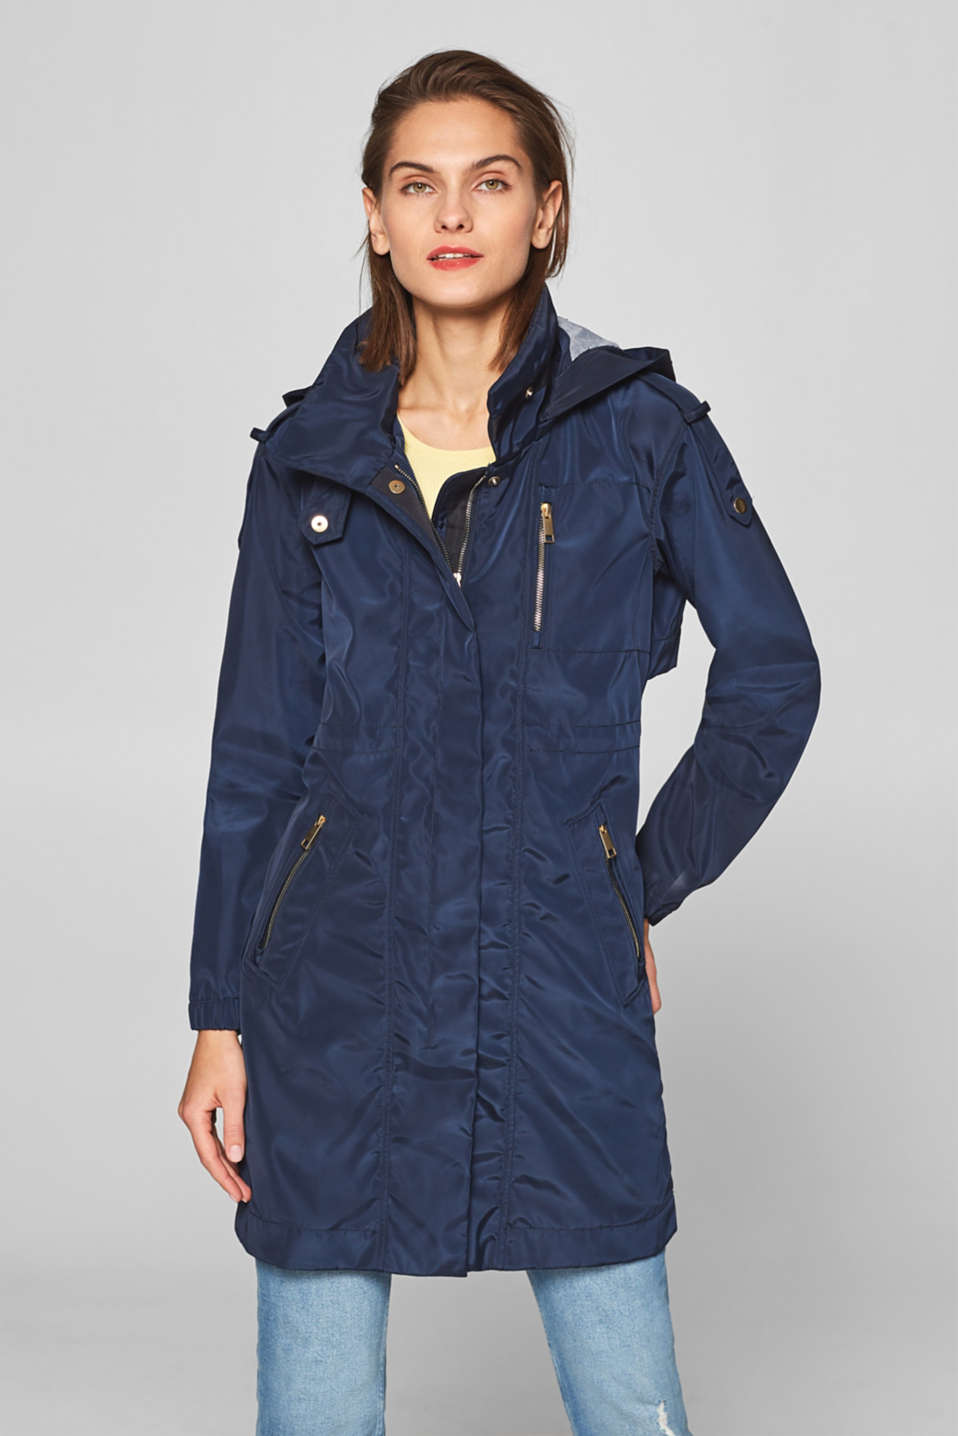 Esprit - Weatherproof parka with jersey lining